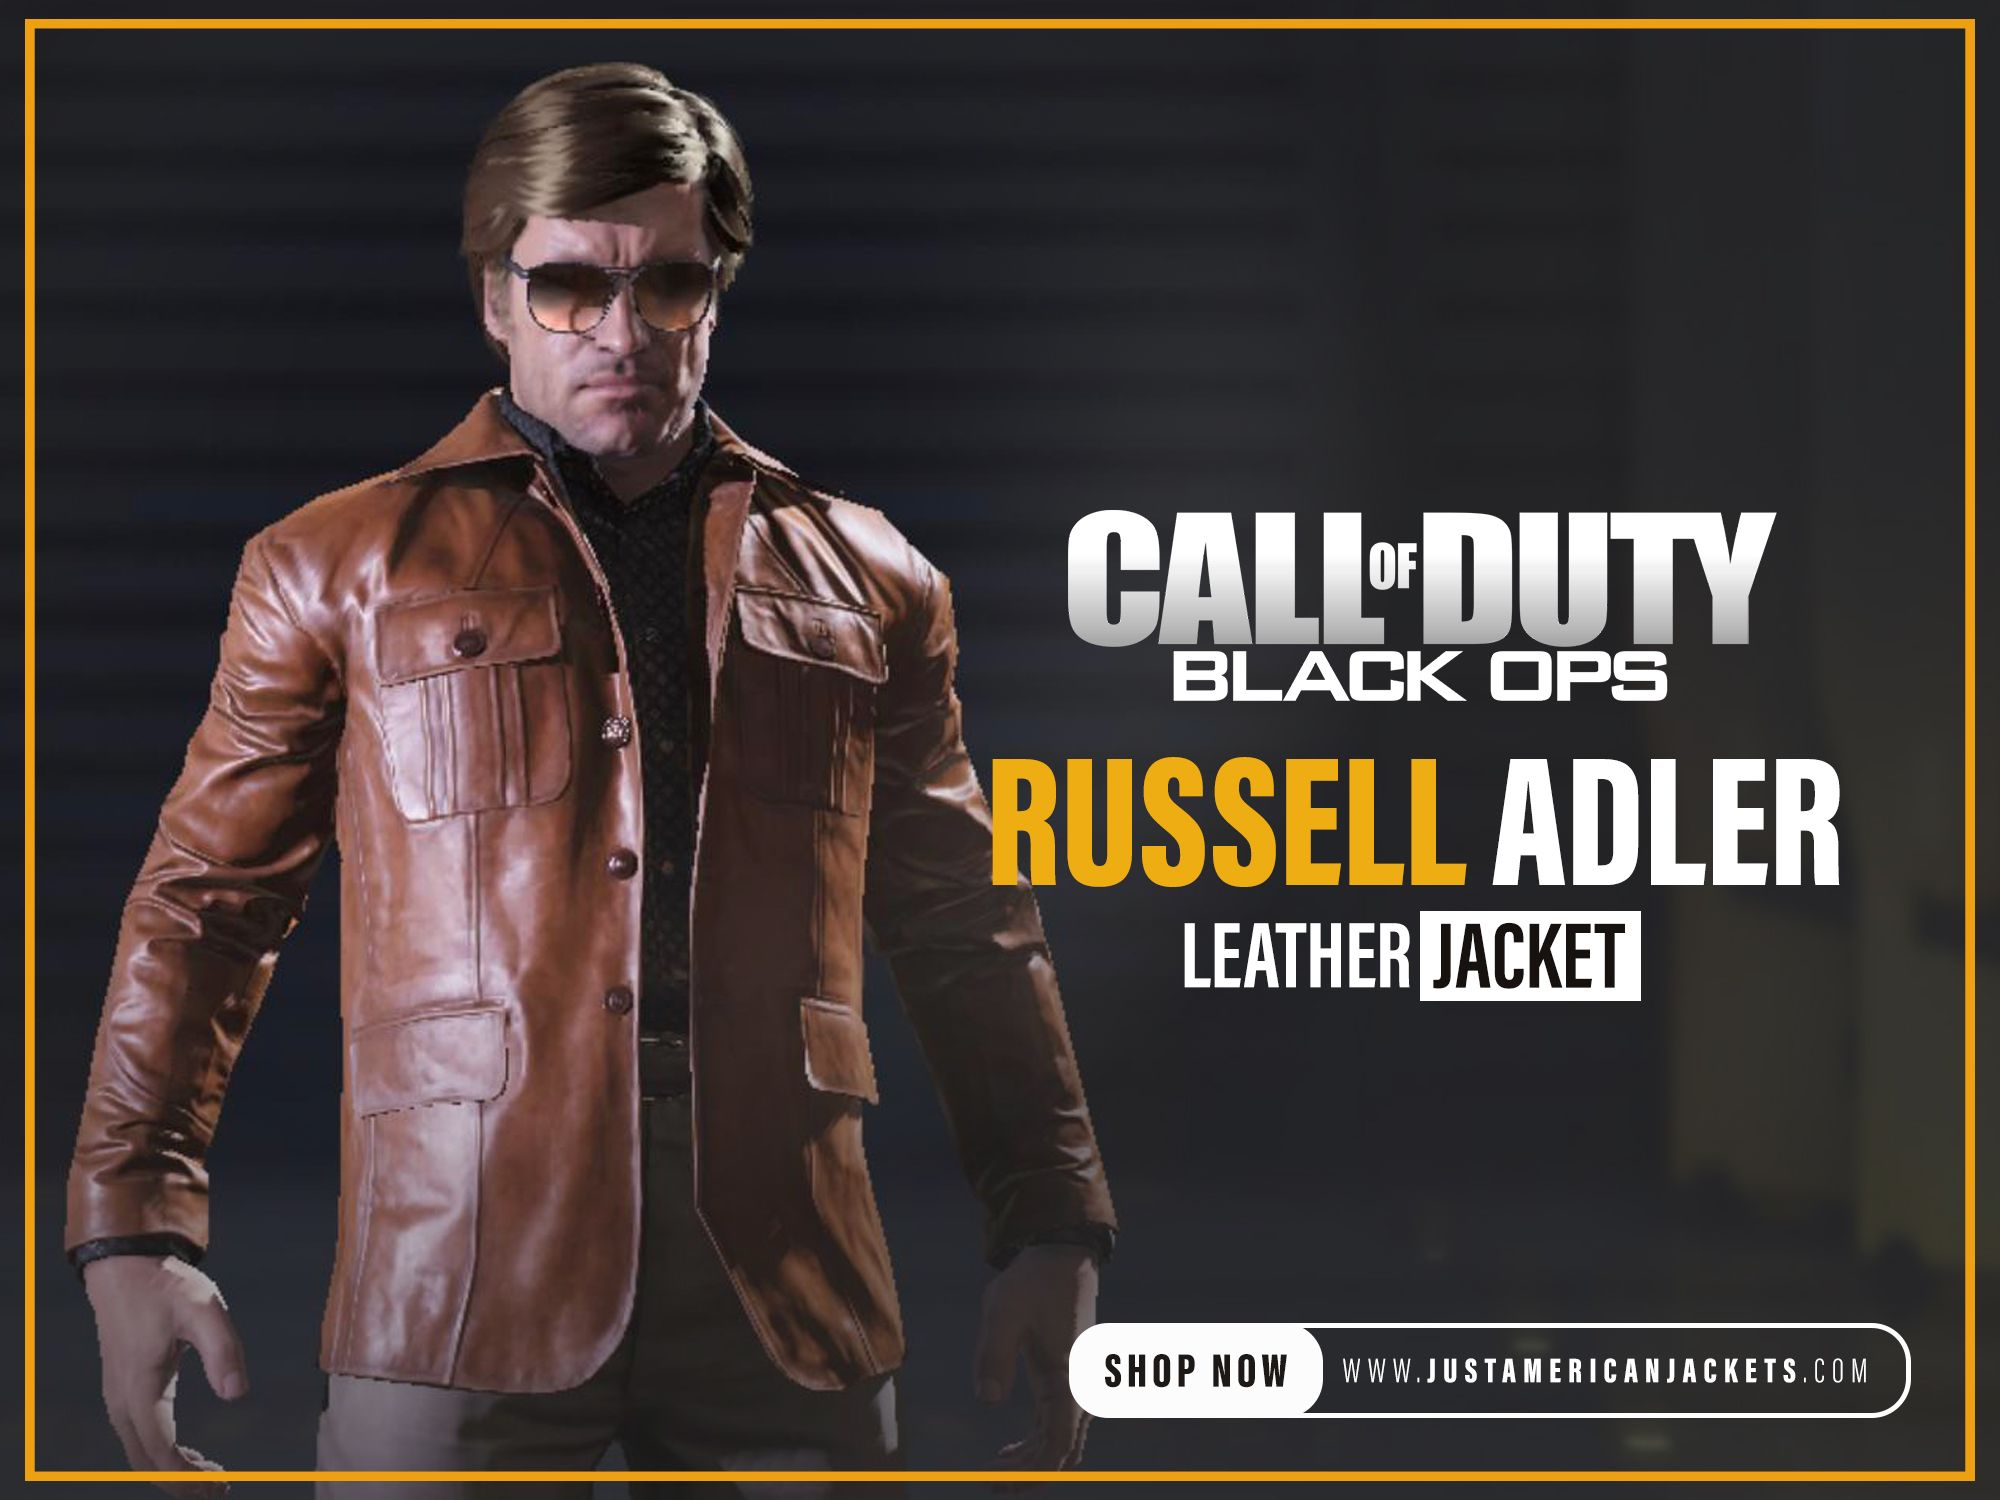 Call Of Duty Black Ops Russell Adler Jacket Just American Jackets In 2021 Leather Jacket Shopping Call Of Duty Black Black Ops [ 1500 x 2000 Pixel ]